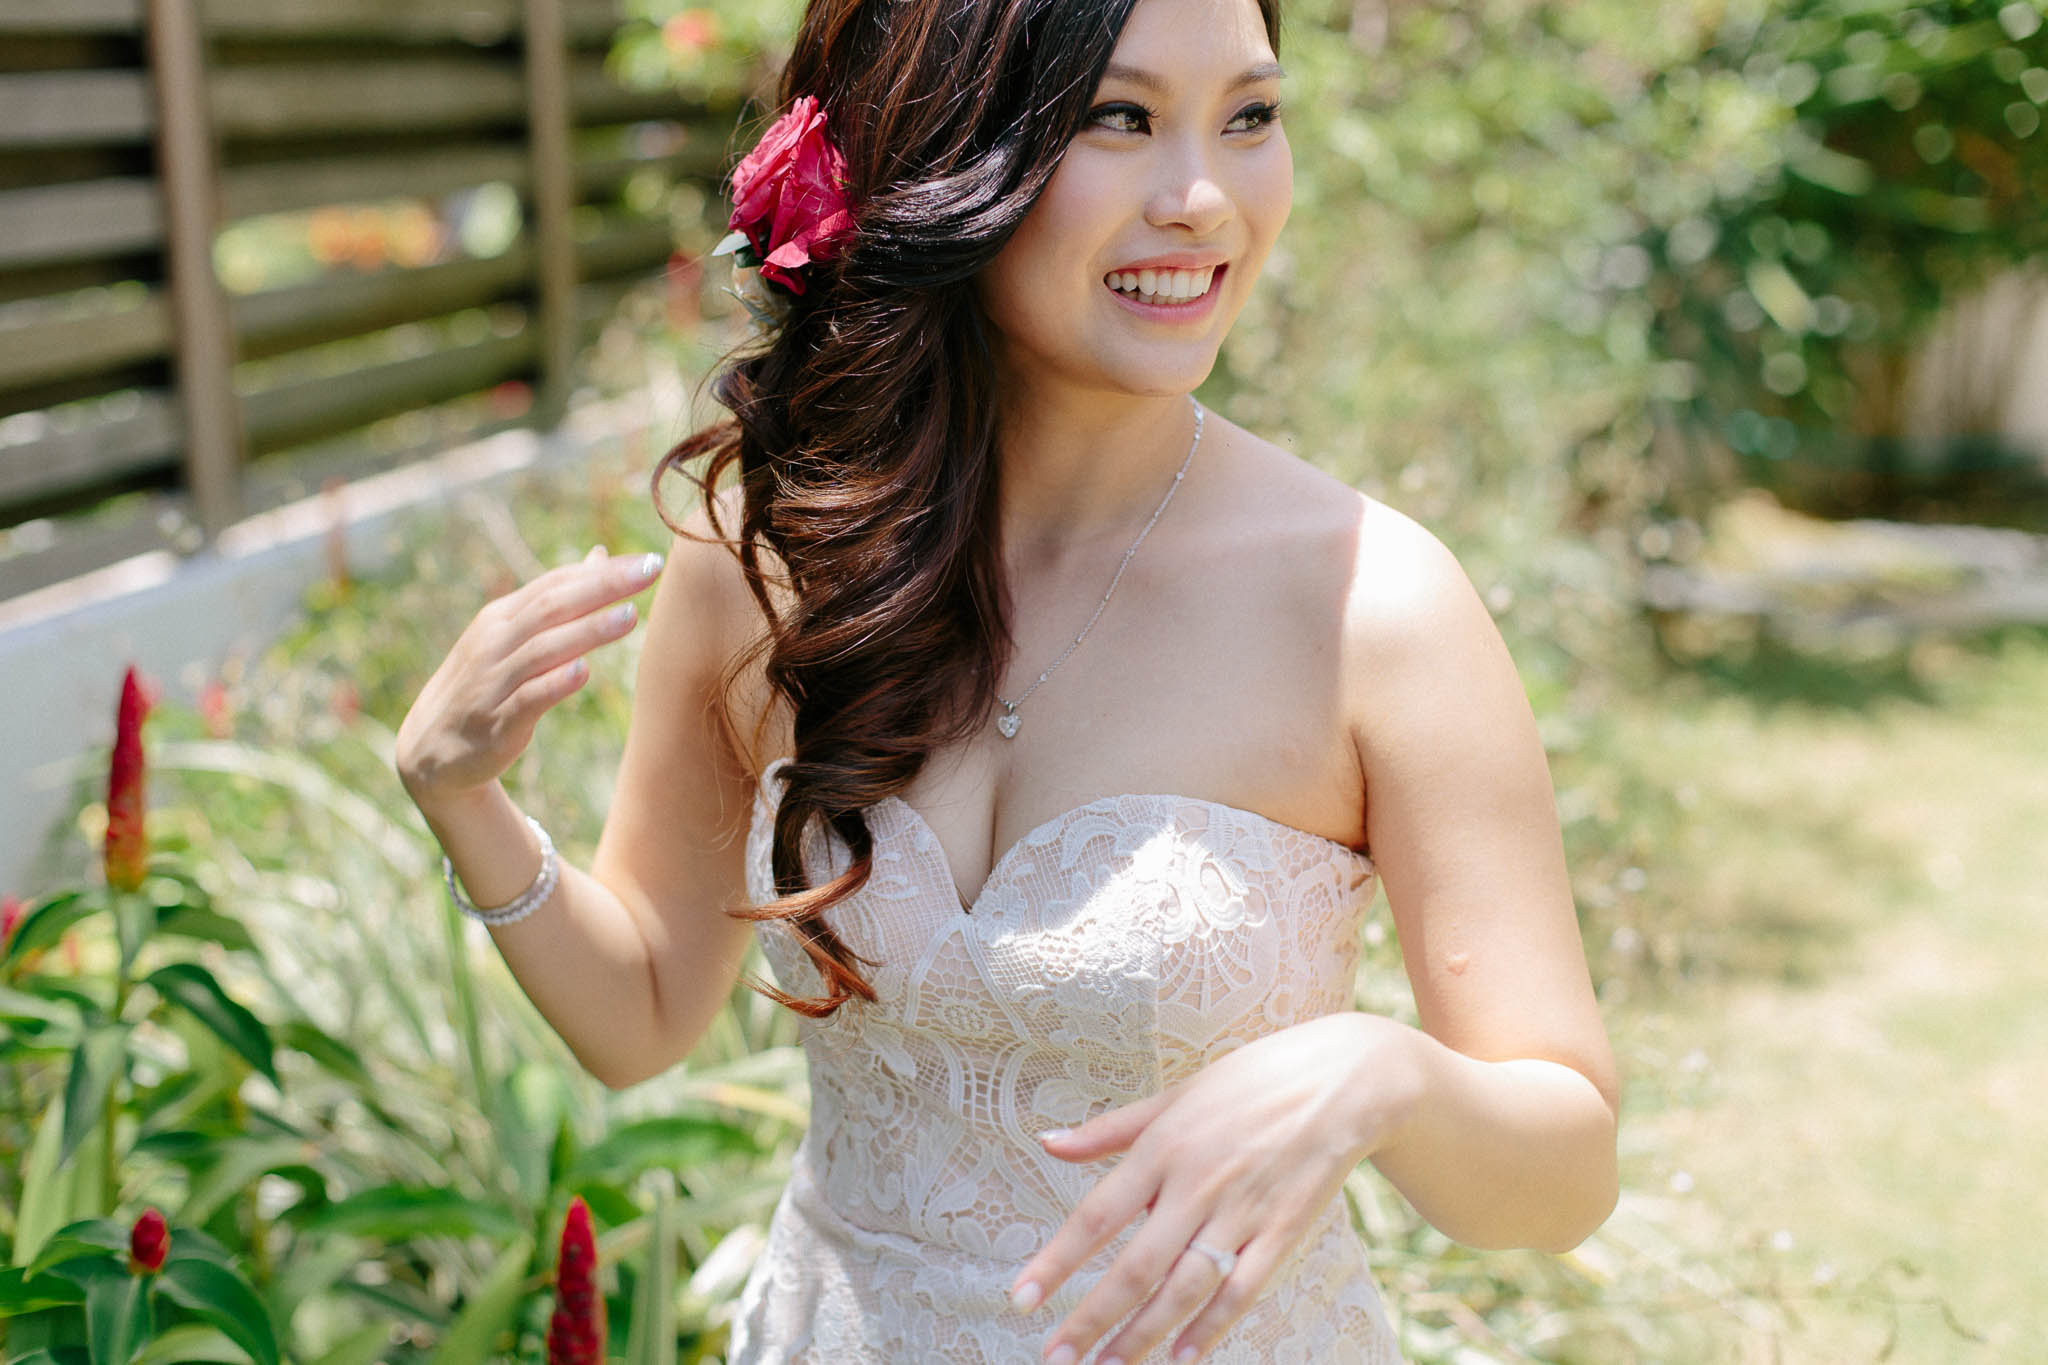 singapore-wedding-photographer-we-made-these-2016-selects-090.jpg